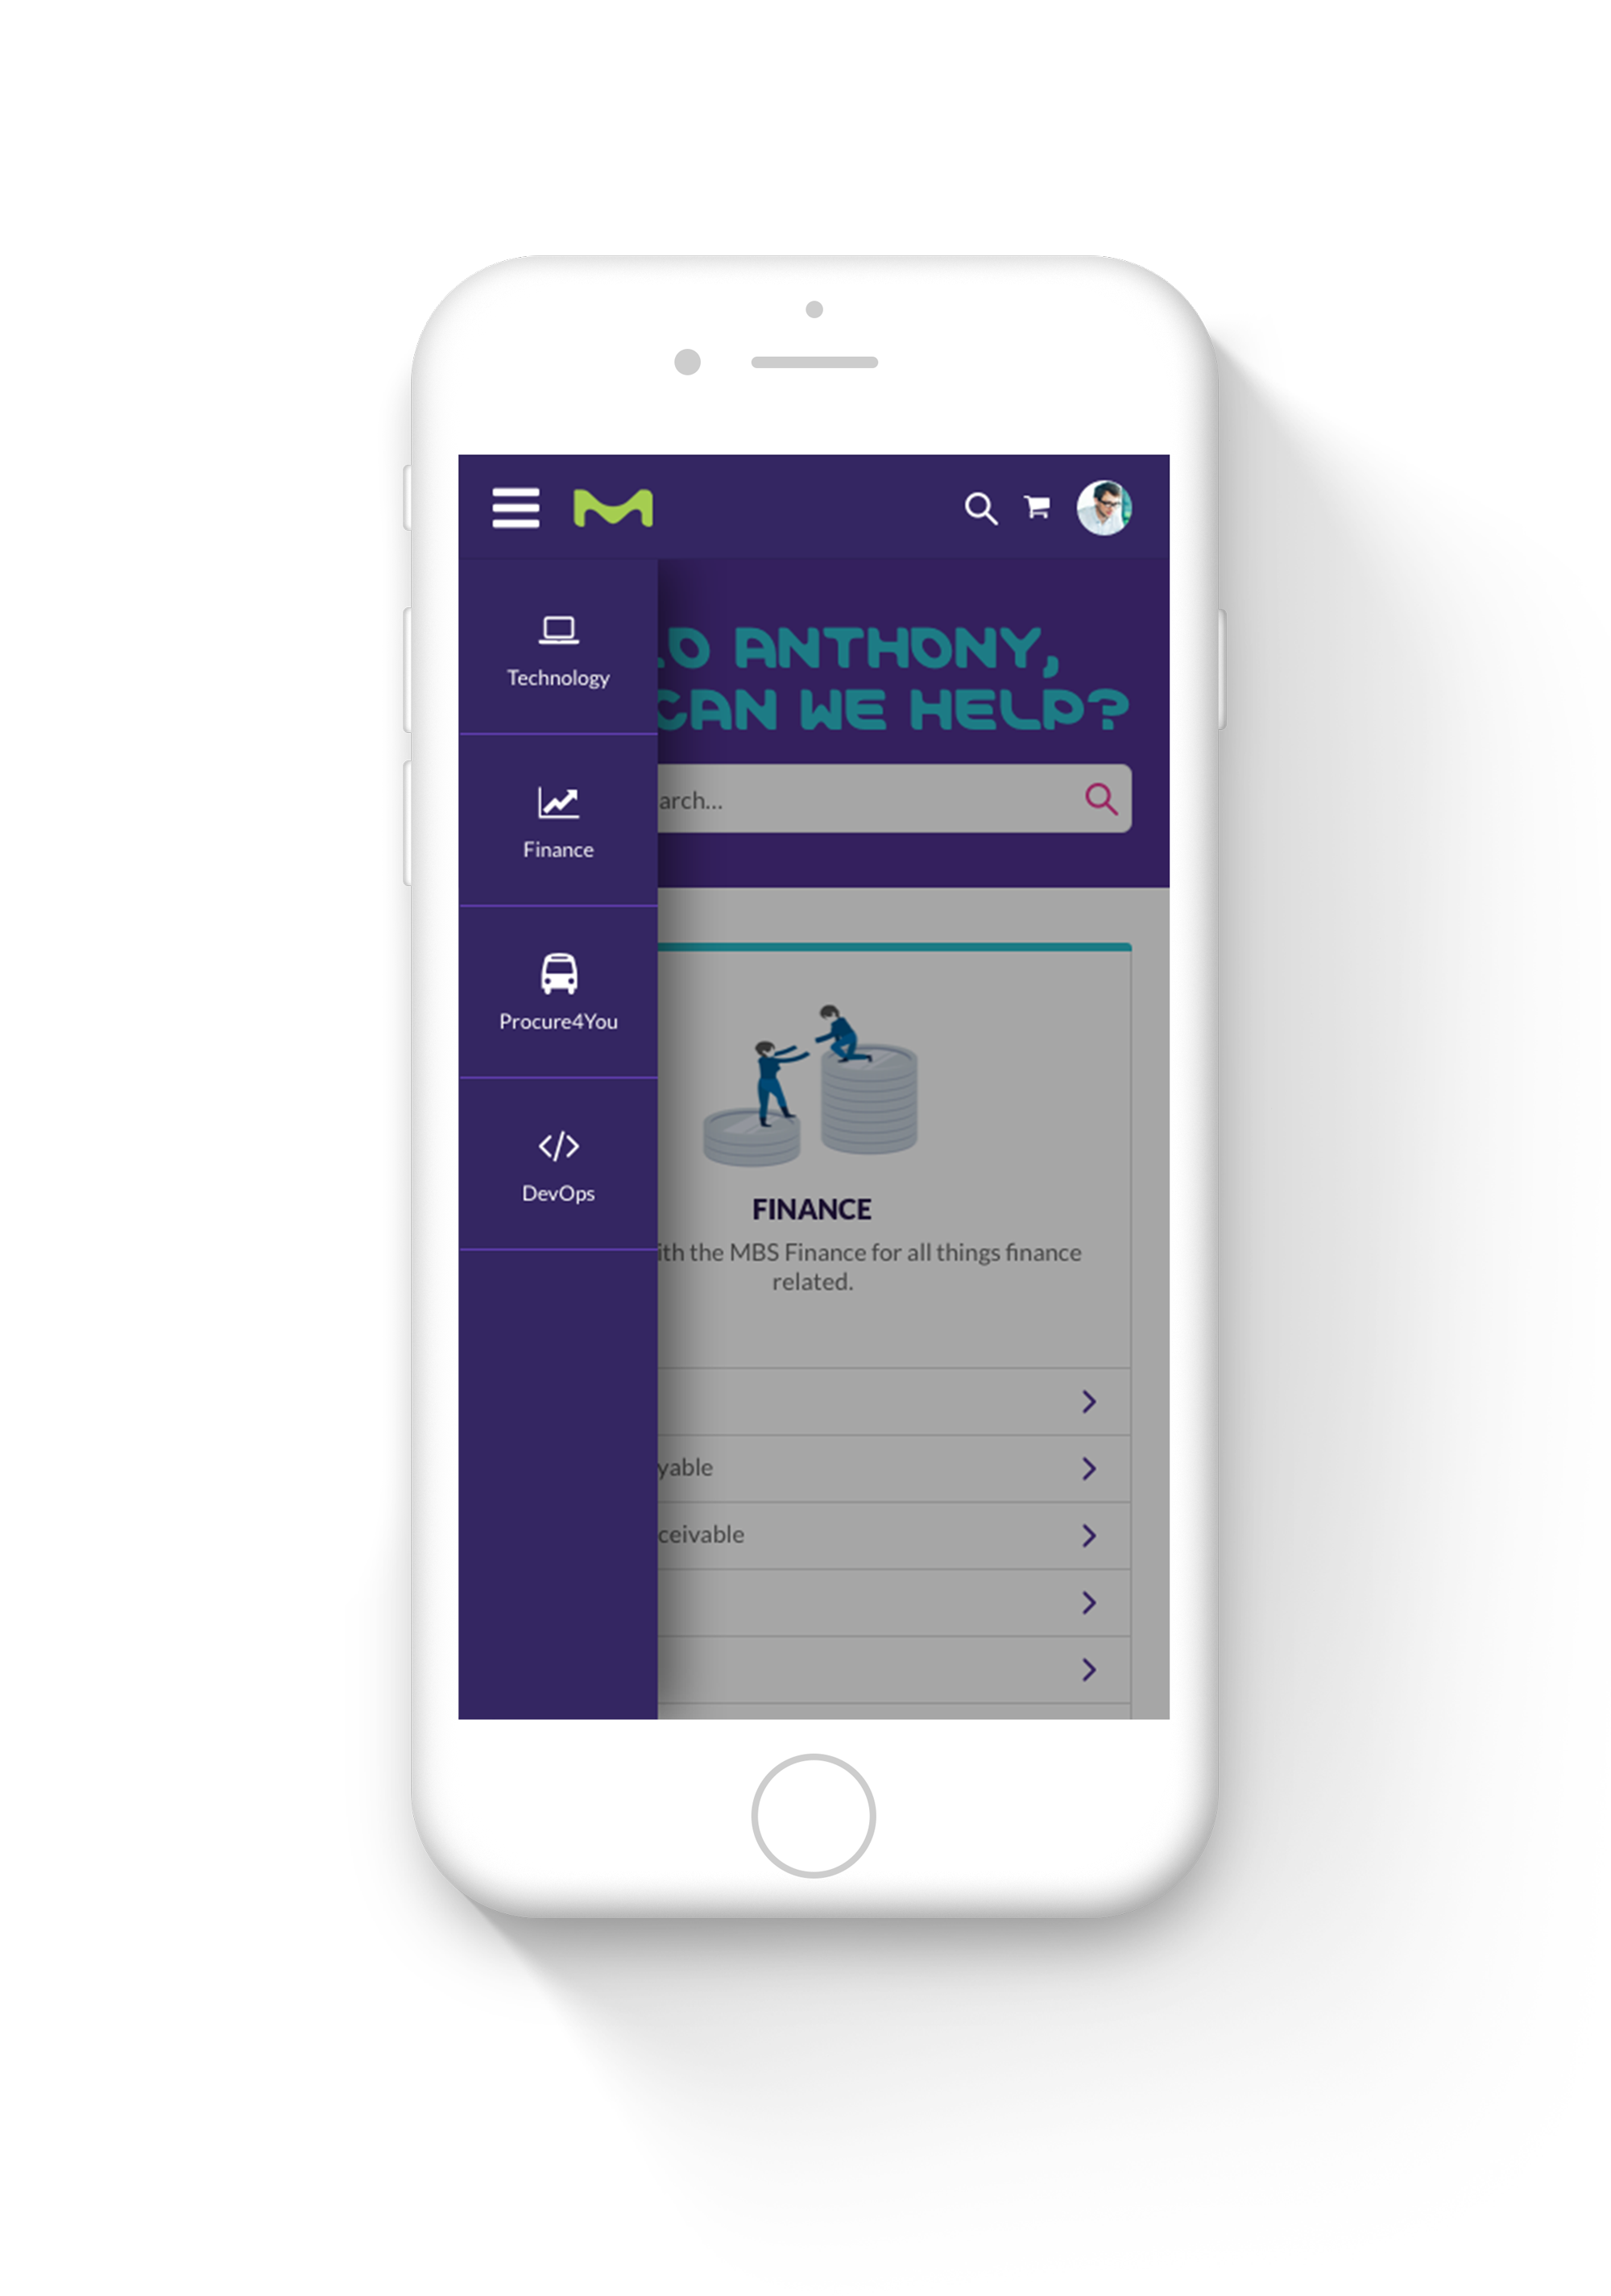 Mobile Menu Screenshot of Merck ServiceNow Service Portal